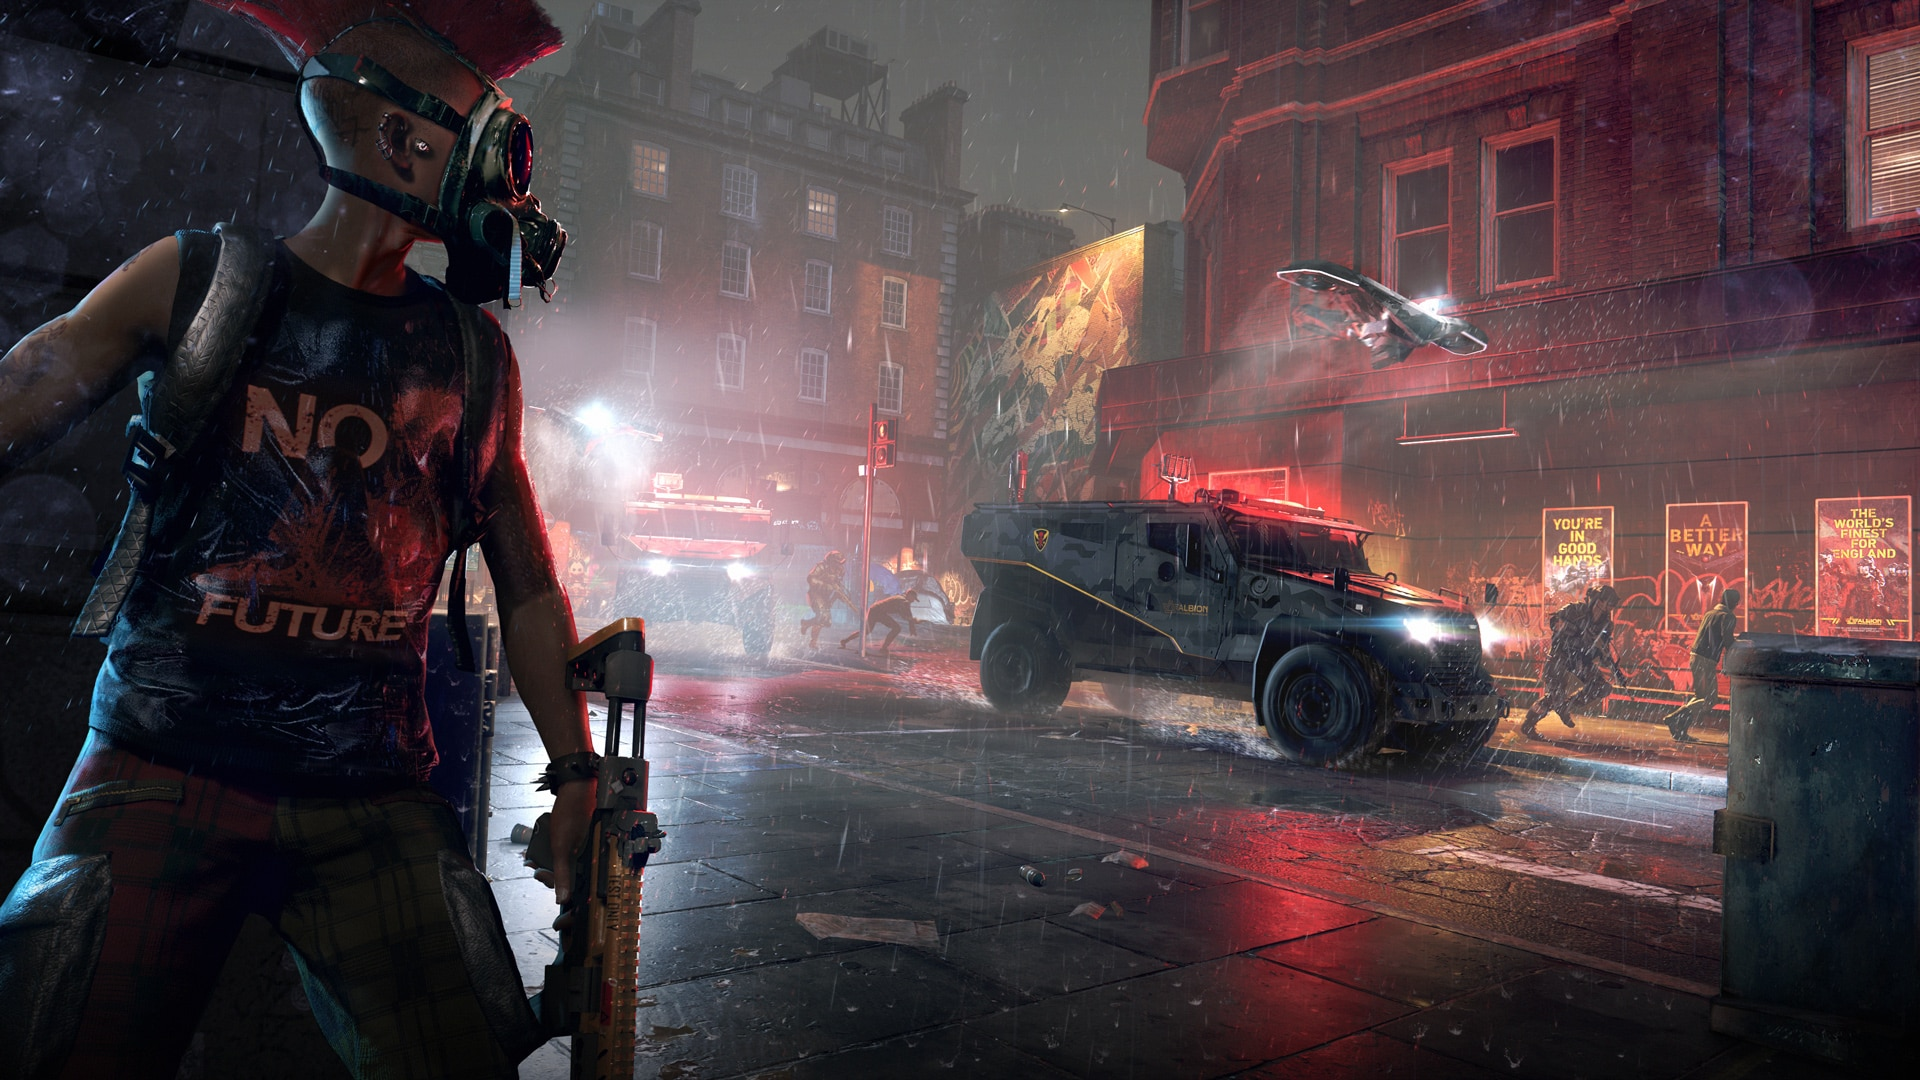 [UN][News] Watch Dogs: Legion – Hands-On With Cargo Drones, Recruitable Enemies, and a Revamped DedSec - Cinematic-on-the-run-1920x1080